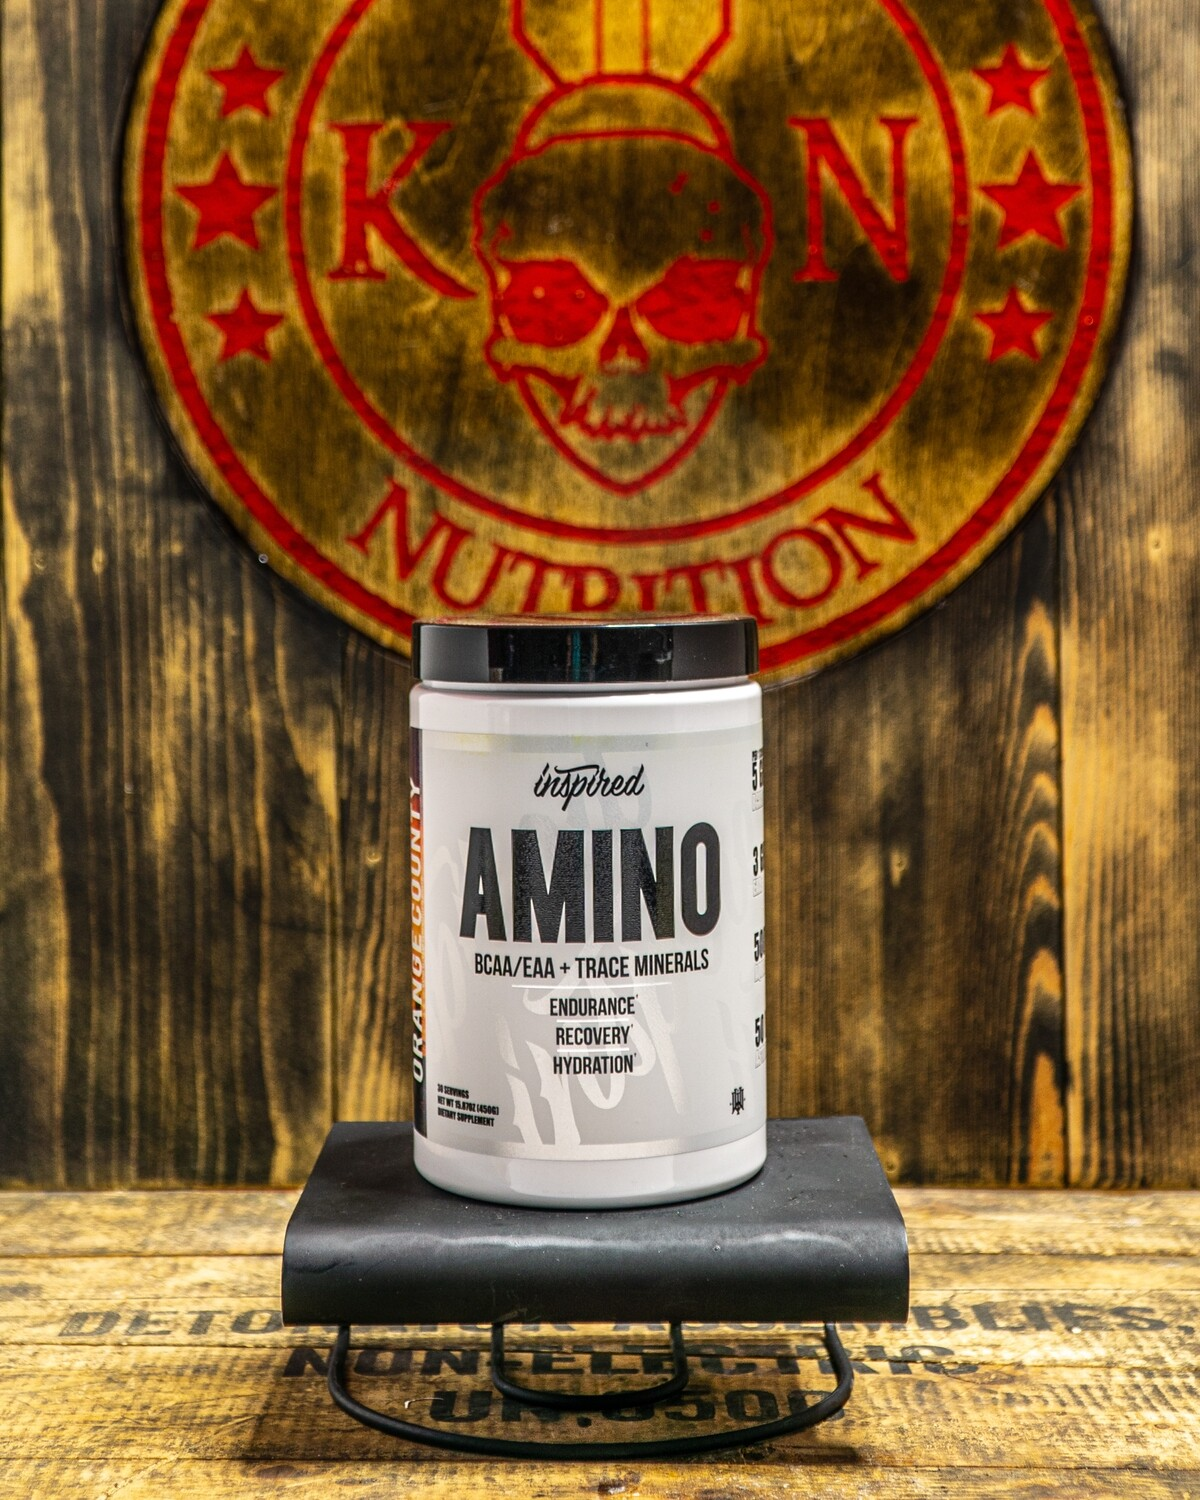 Inspired, Amino, Bcaa/Eaa, Lemon Grove, 30 Servings